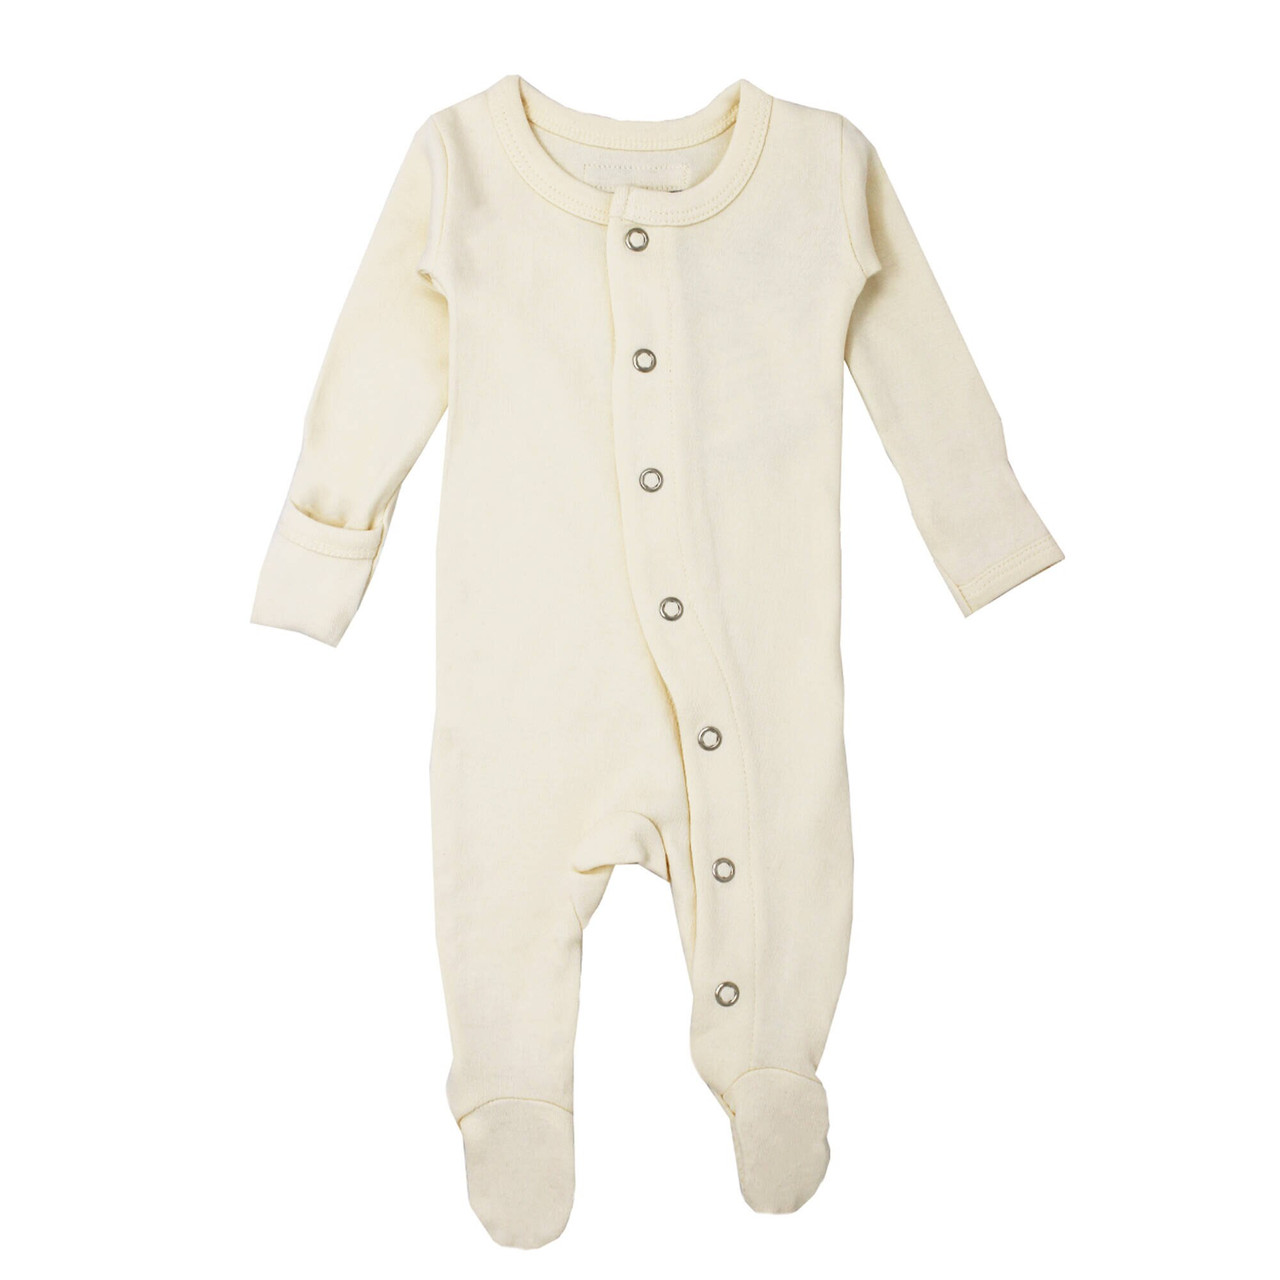 Organic Footed Overall in Beige, Flat